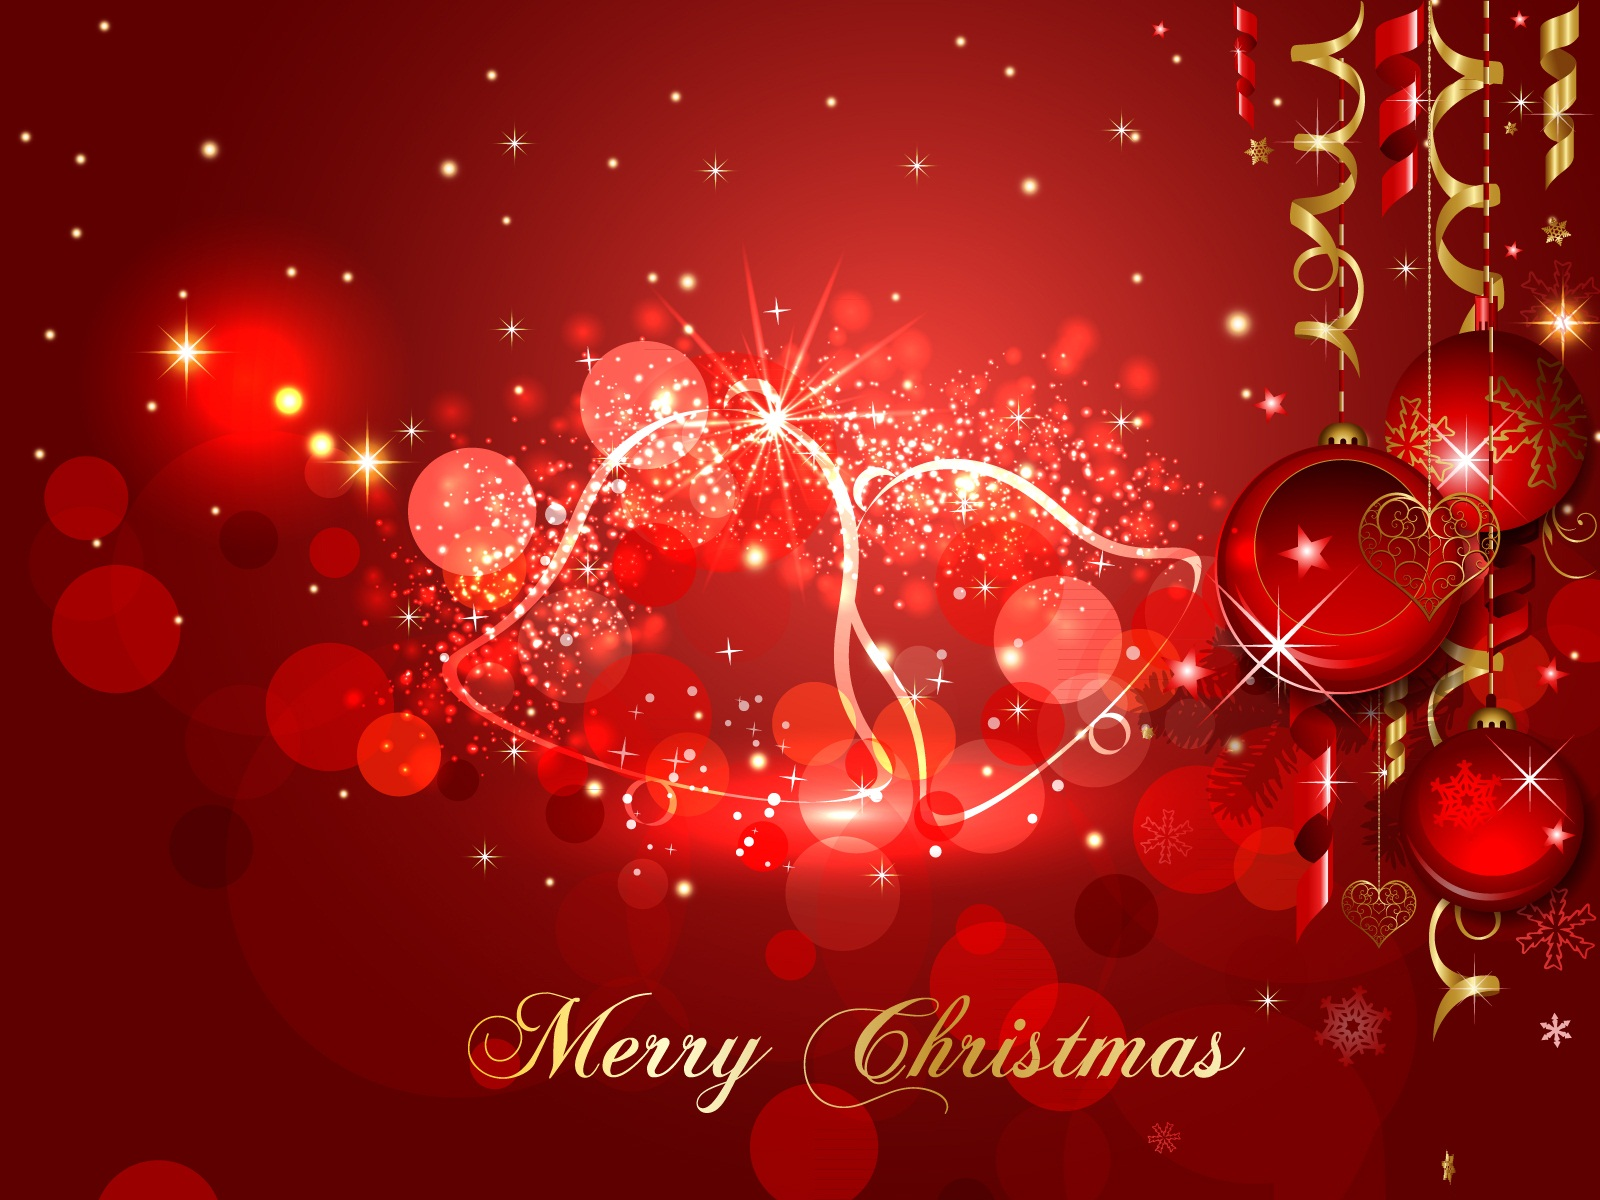 Merry Christmas Christian Wallpaper   Viewing Gallery 1600x1200